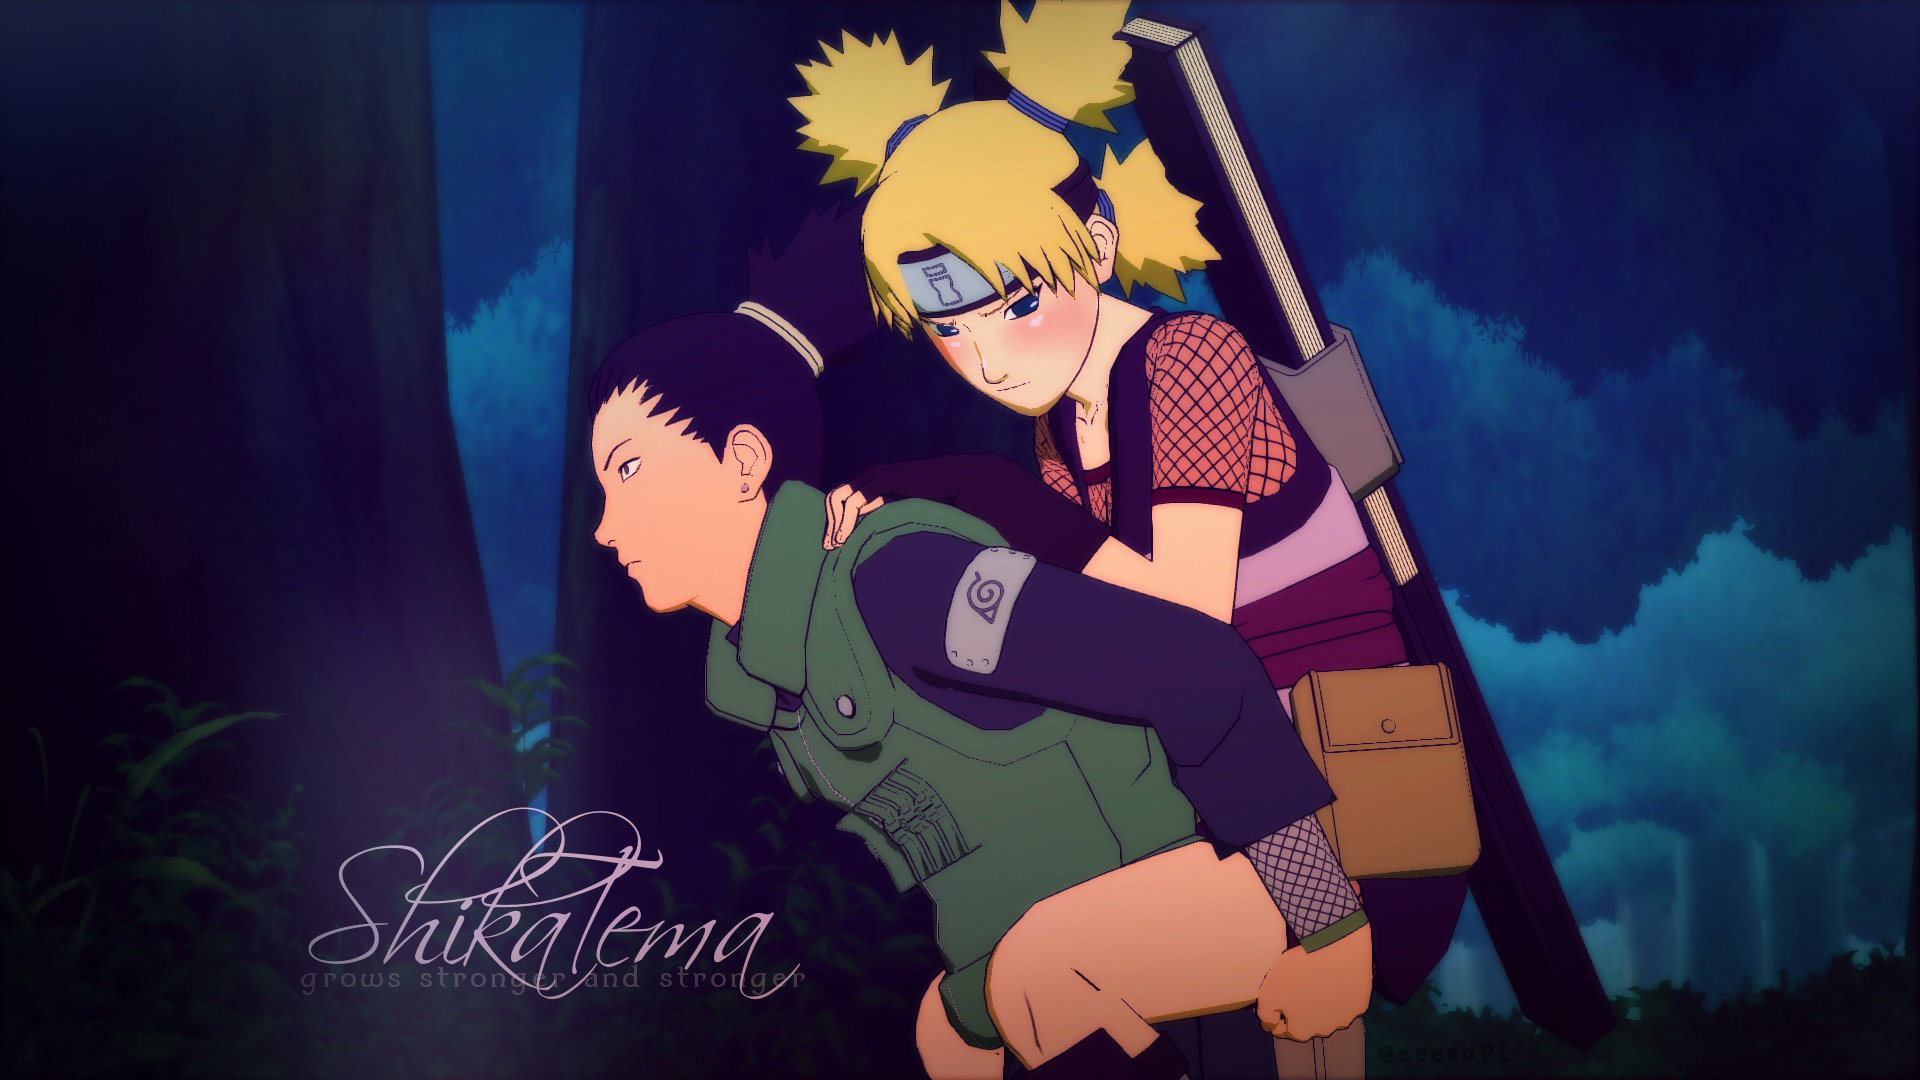 Download hd 1080p Naruto PC wallpaper ID:395186 for free